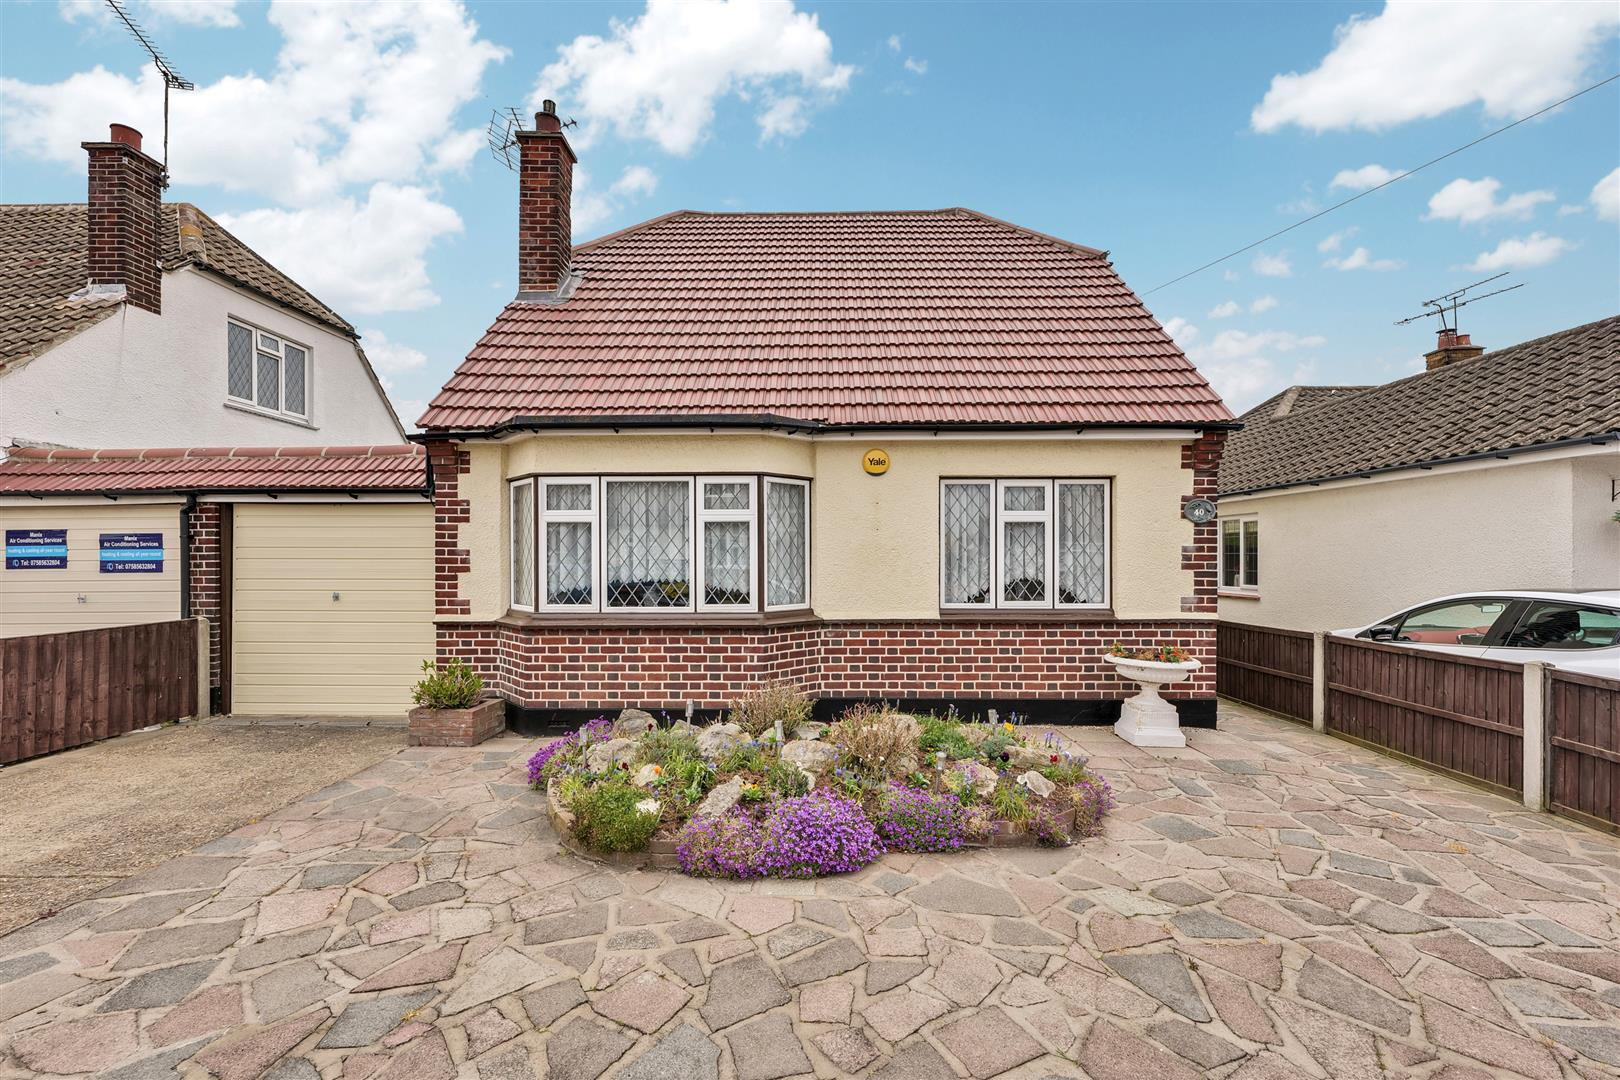 Fairfield Gardens, Leigh-On-Sea